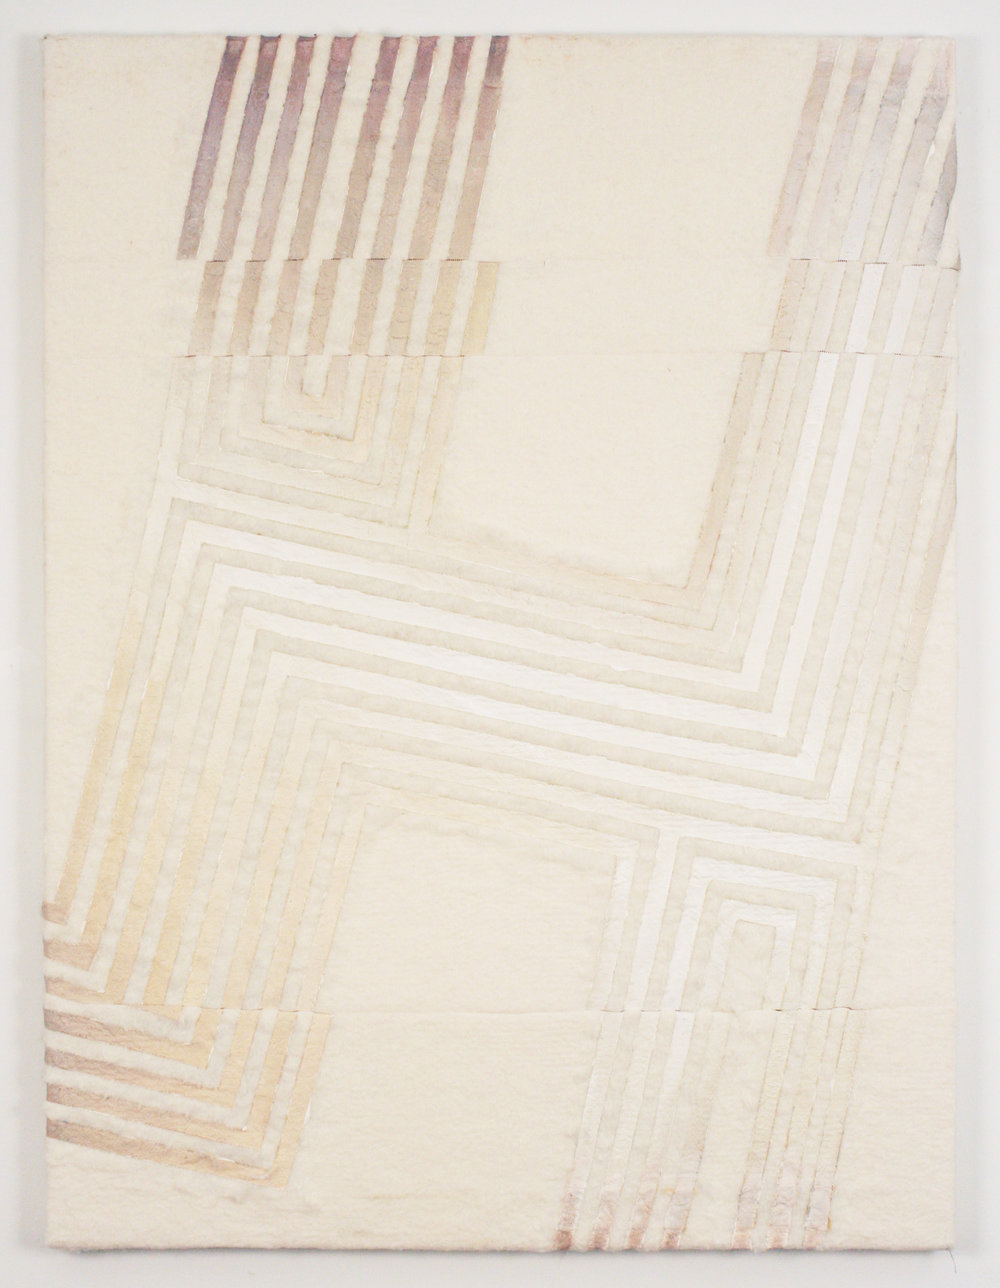 H (hedonism)  2016 oil on stitched cotton batting 48 in x 36 in